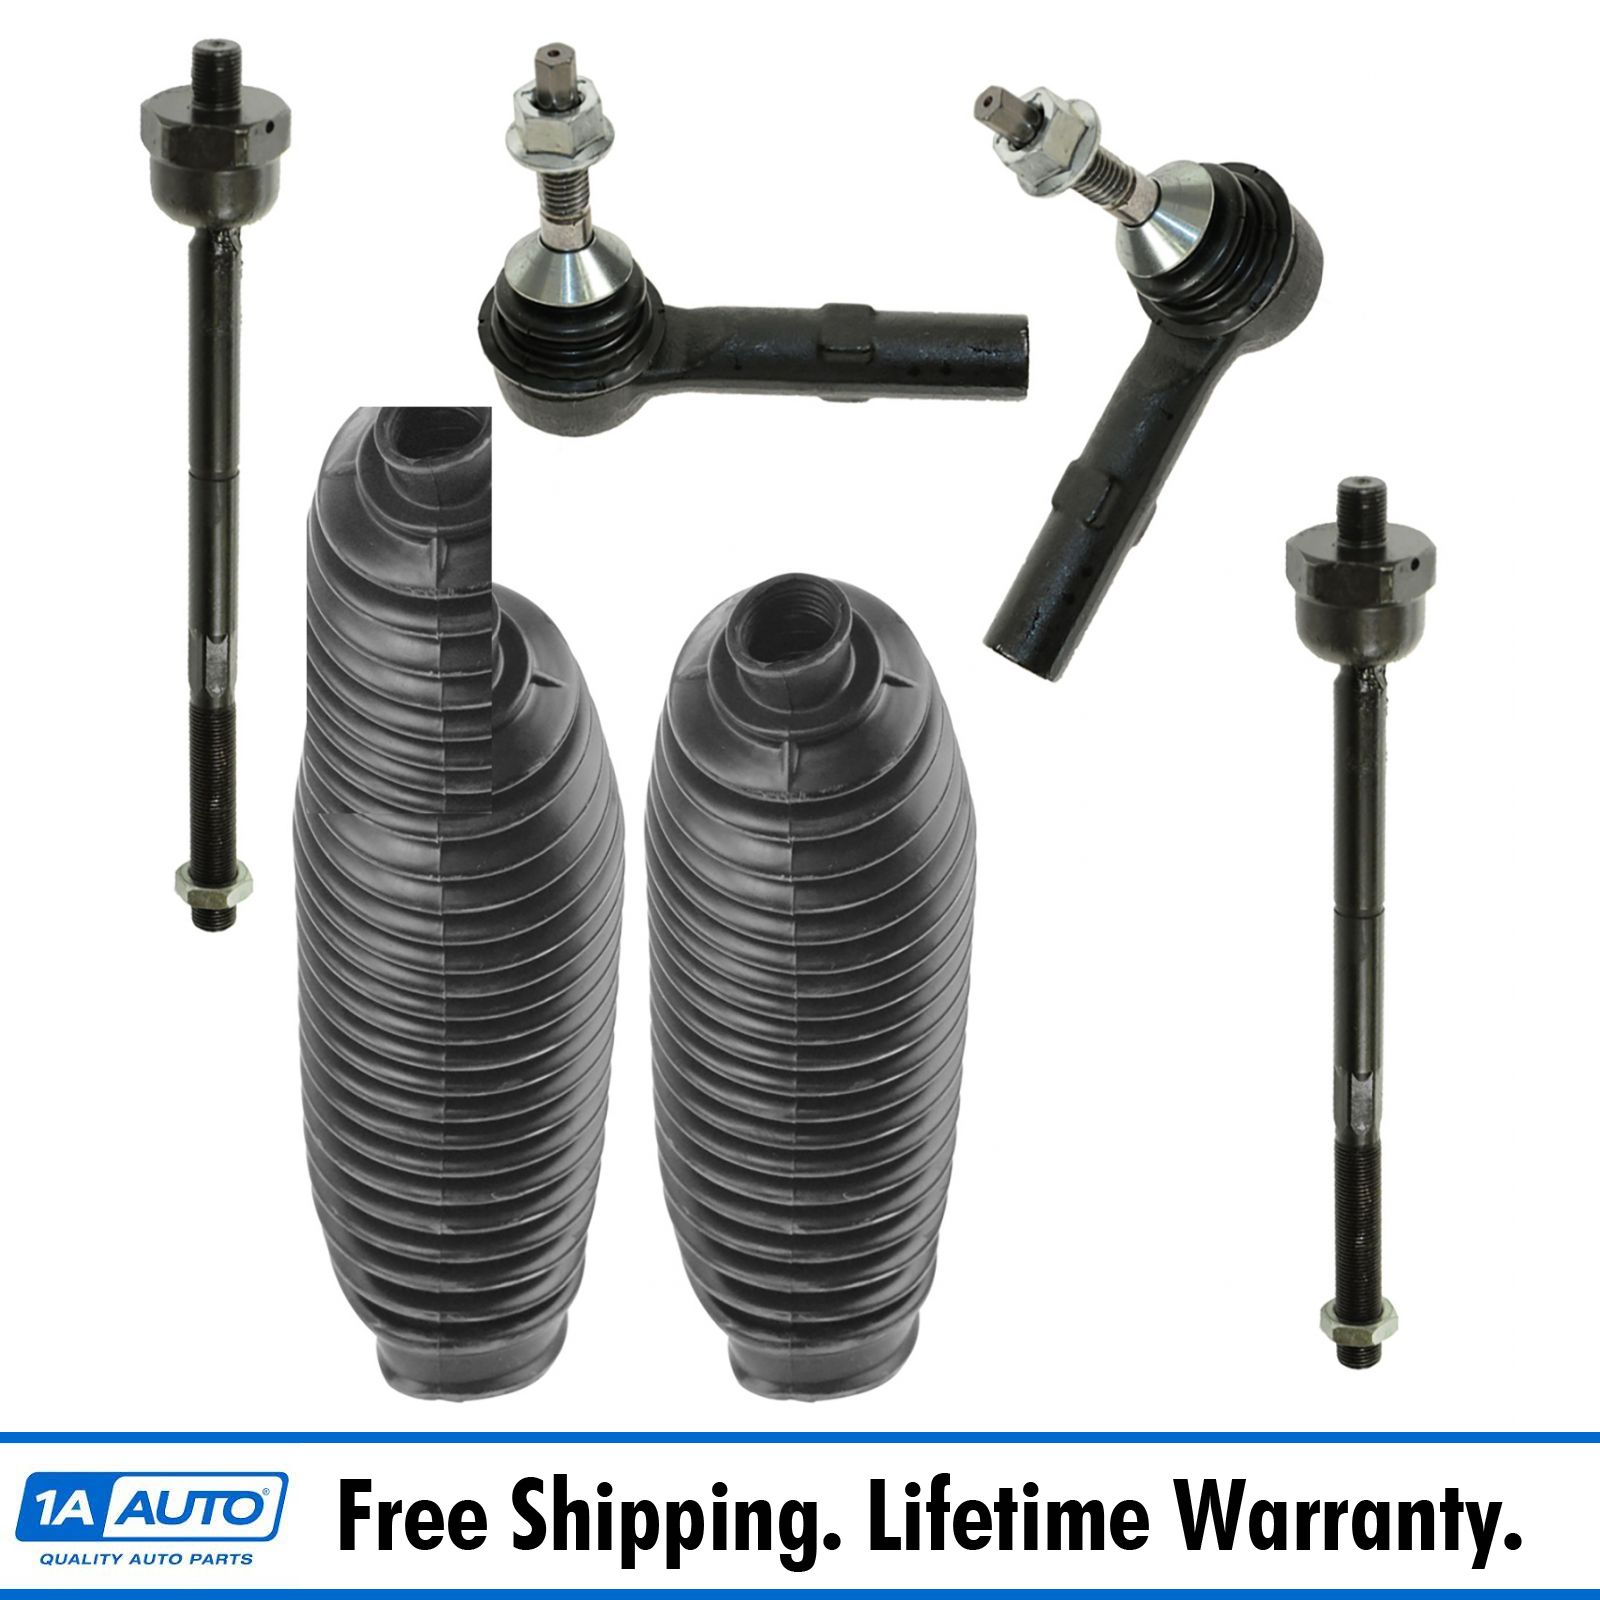 PartsW 6 Piece Kit Inner and Outer Tie Rod Ends Left and Right Front Sway Bar End Links